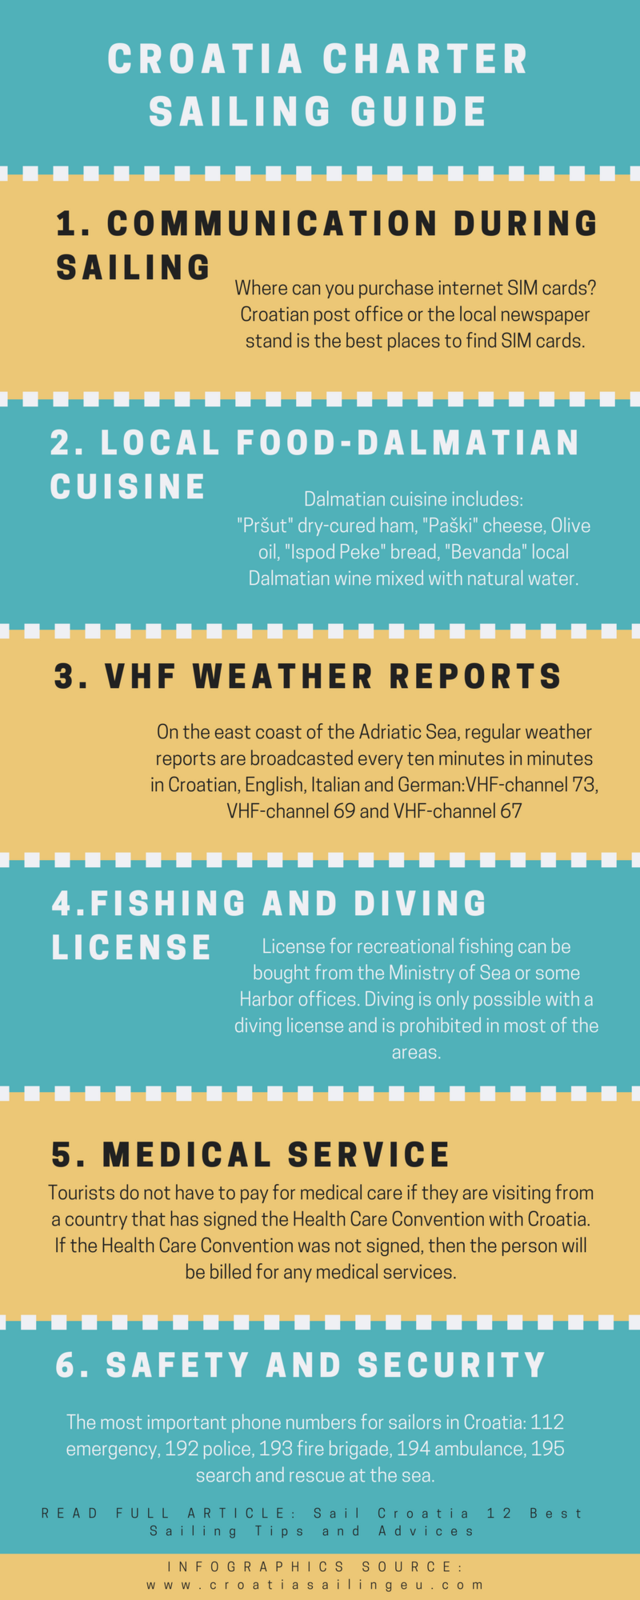 Sail croatia 12 best sailing tips and advices infographic